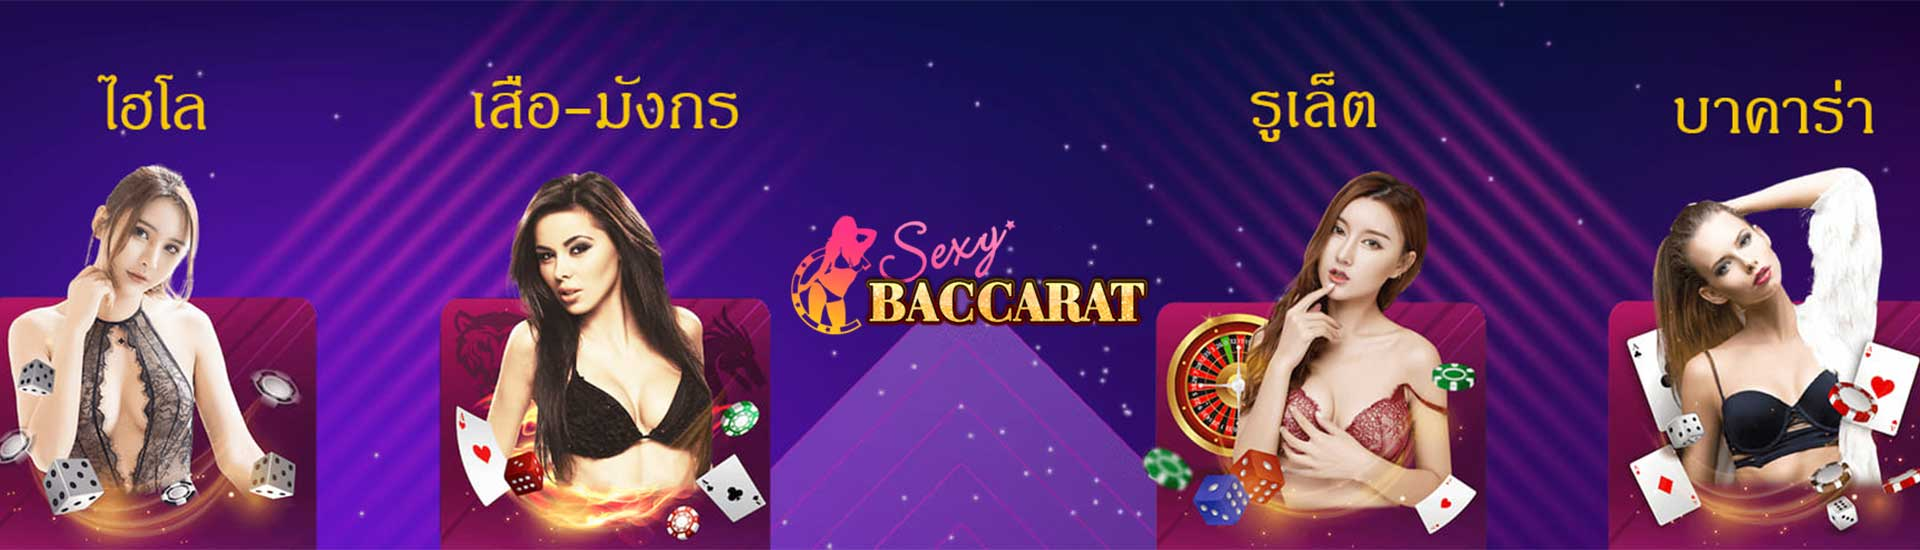 Sexybaccarat_banner